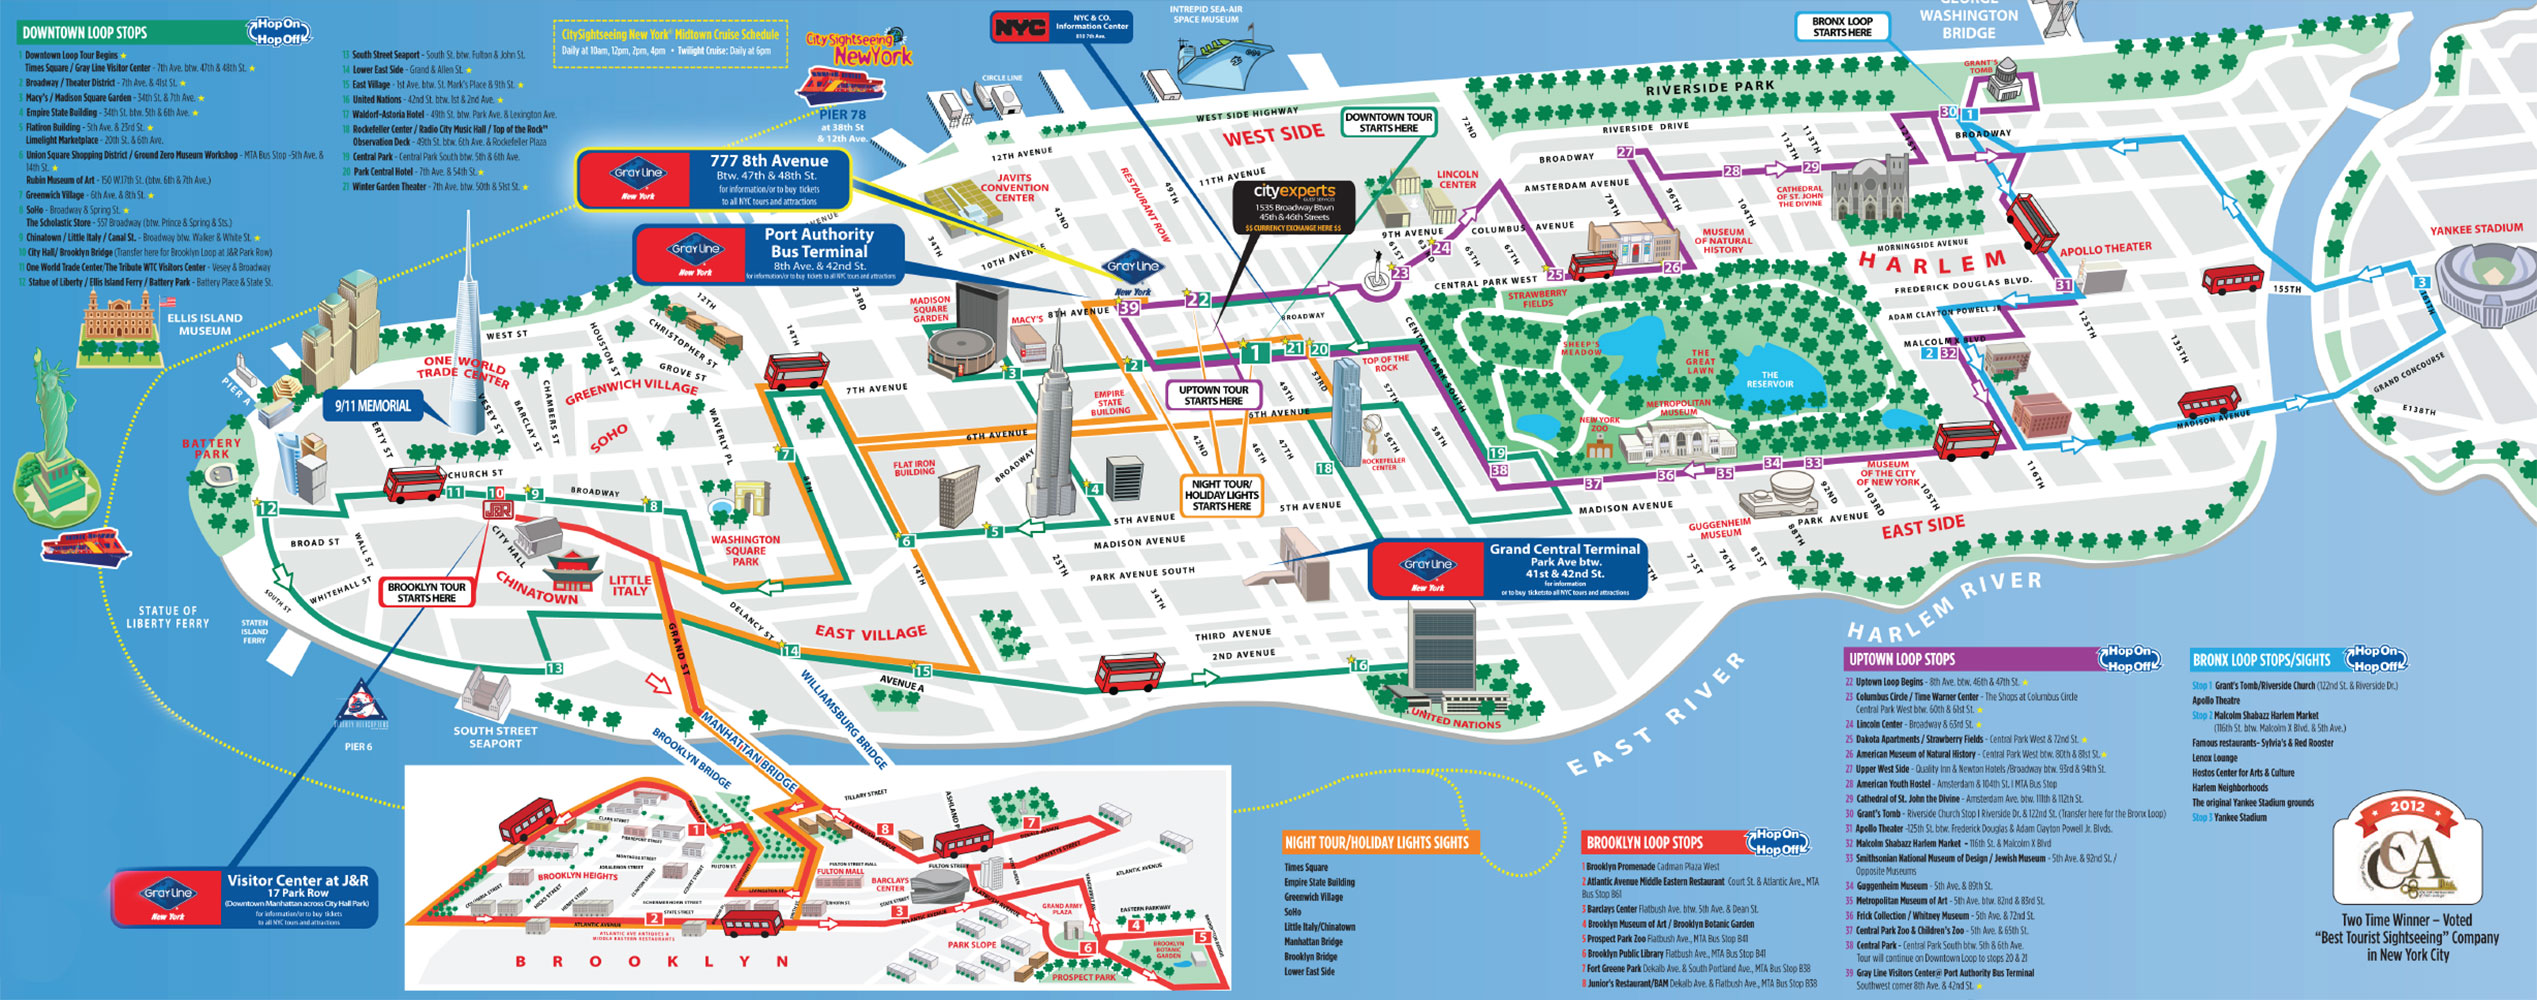 Tourist Attractions In New York Map New York Tourist Attractions – Map Of New York Tourist Attractions